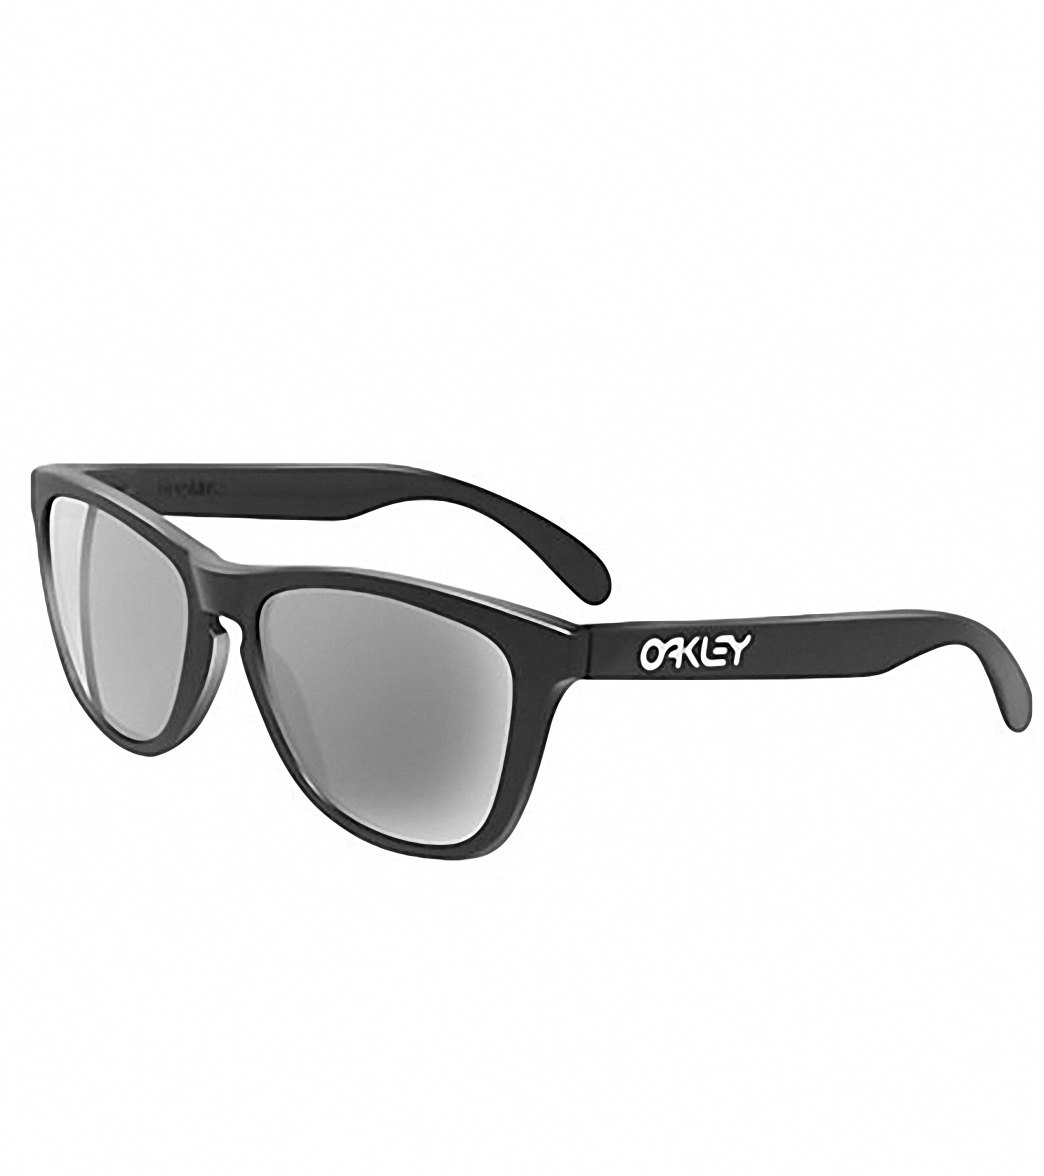 abf6e4ddcc Oakley Frogskins Polarized Sunglasses at SwimOutlet.com - Free Shipping